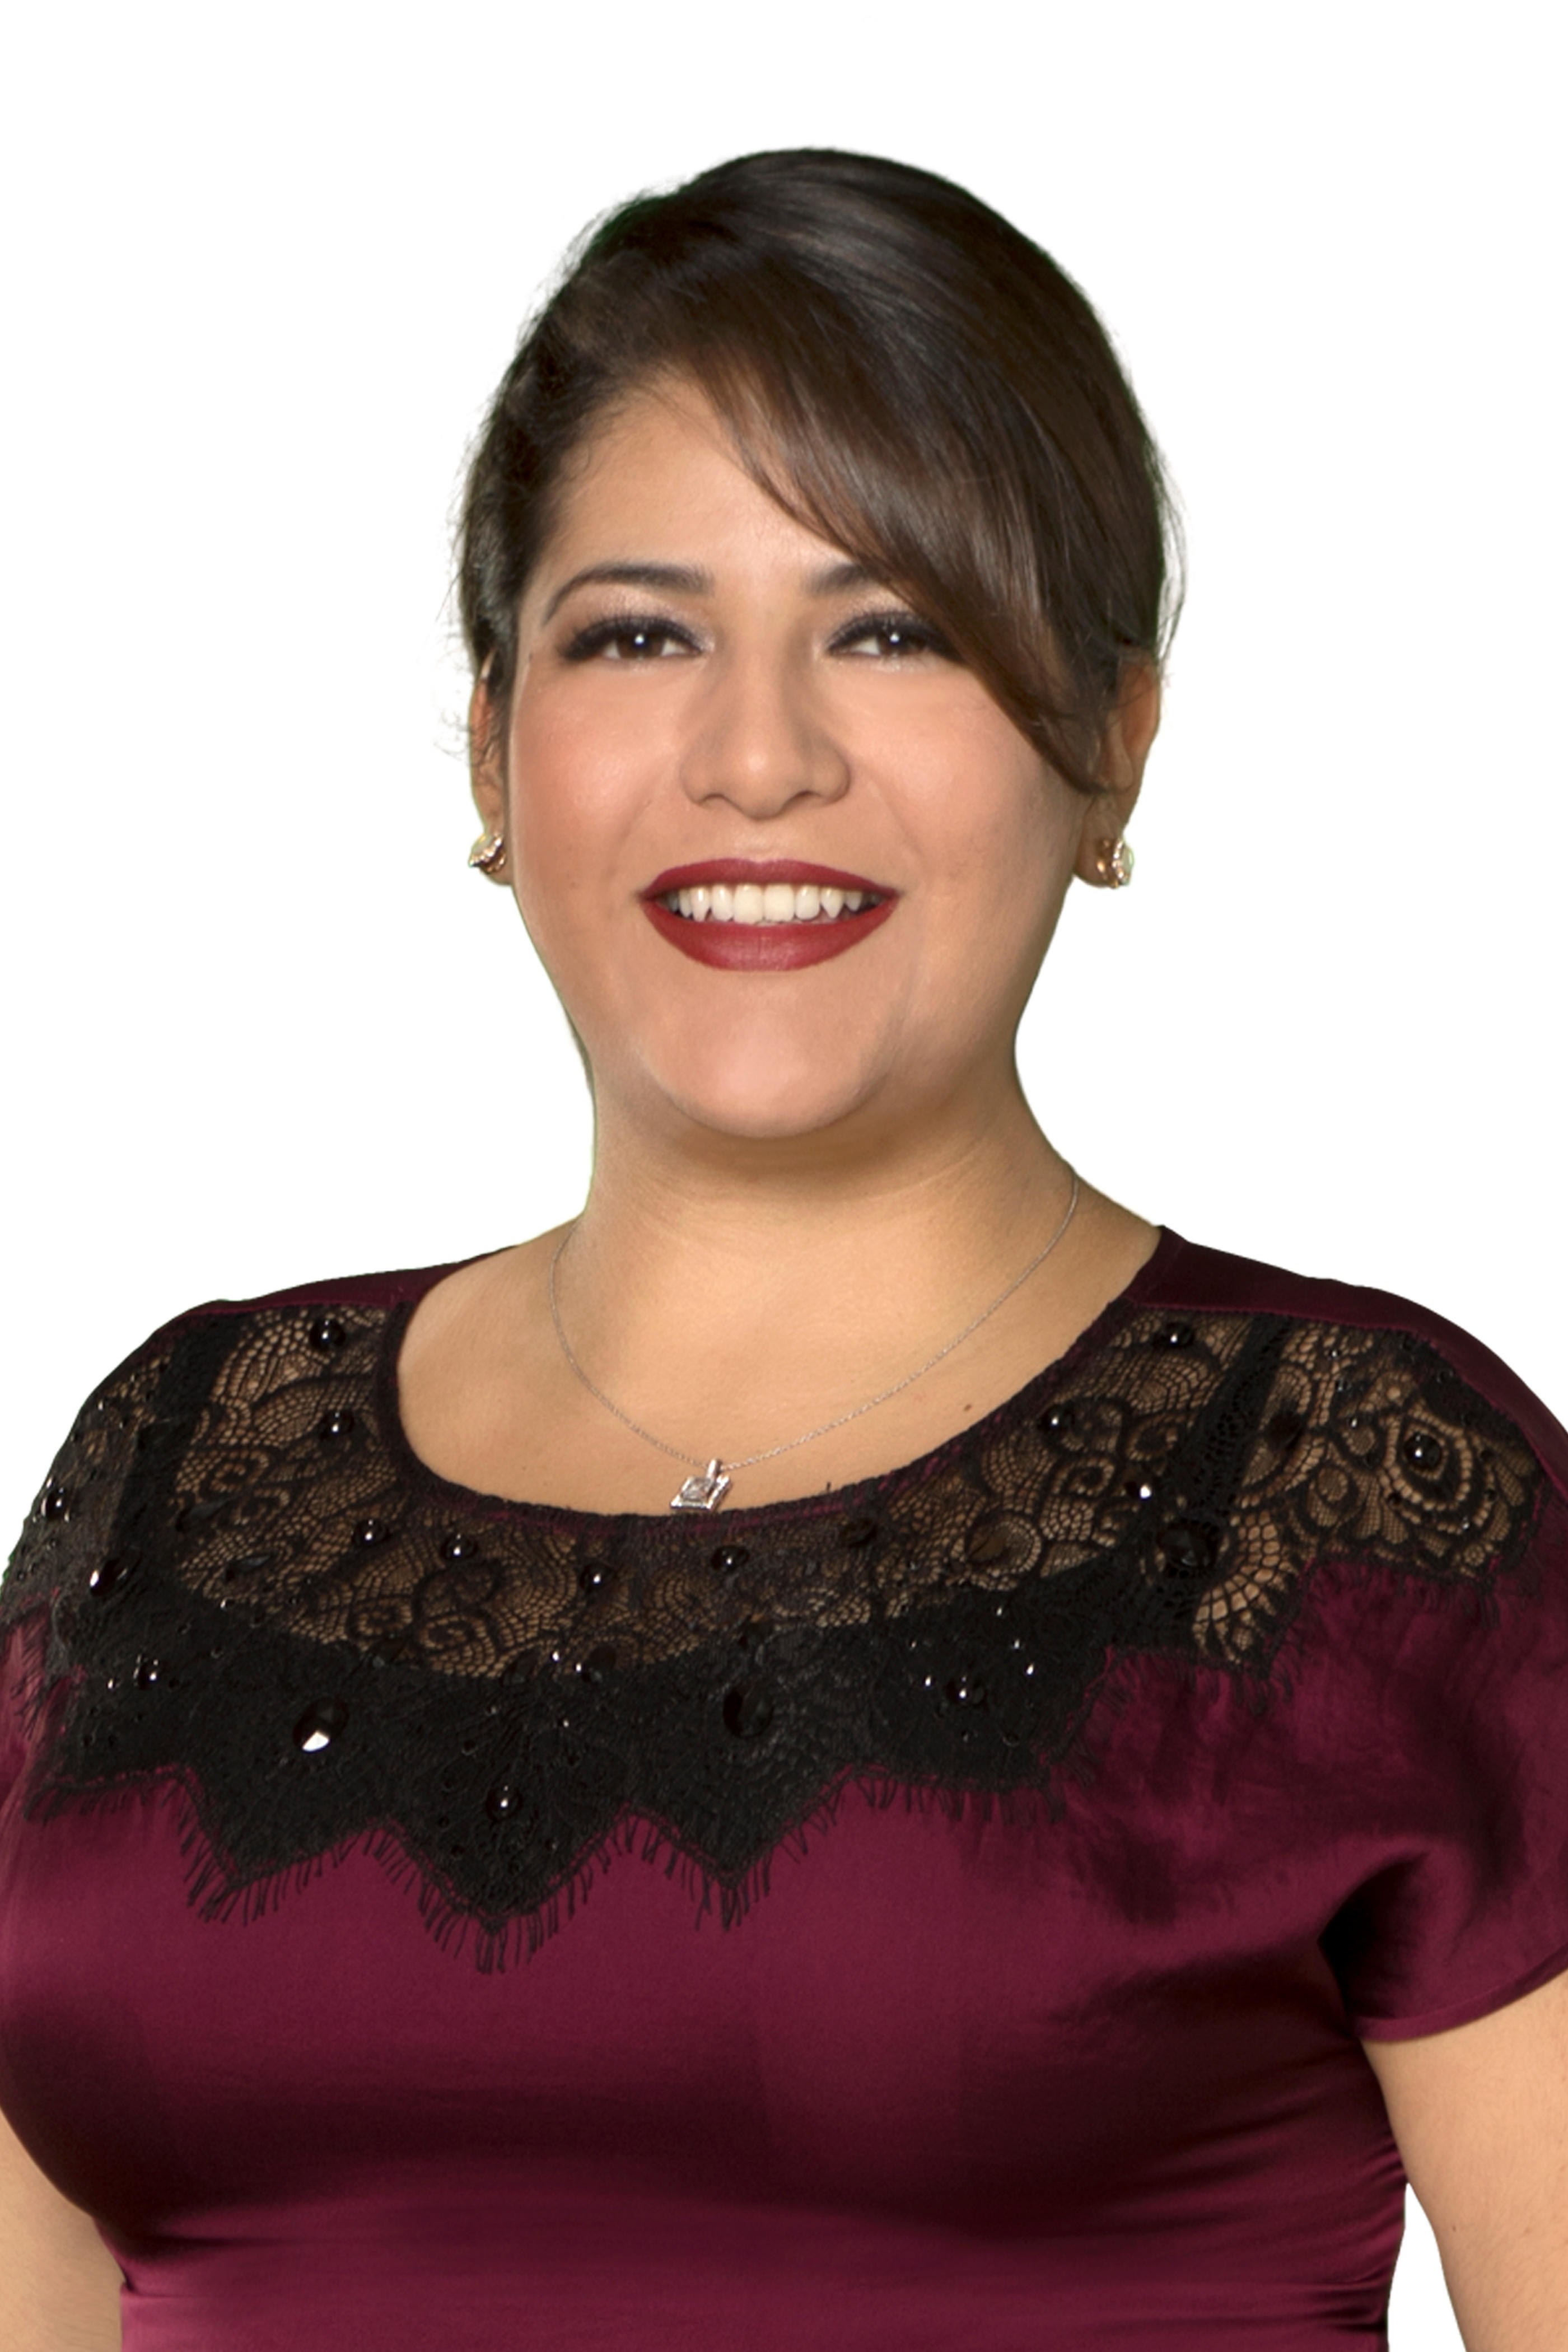 Cynthia Medina Your trusted Allstate advisor Looking forward to managing your insurance needs!